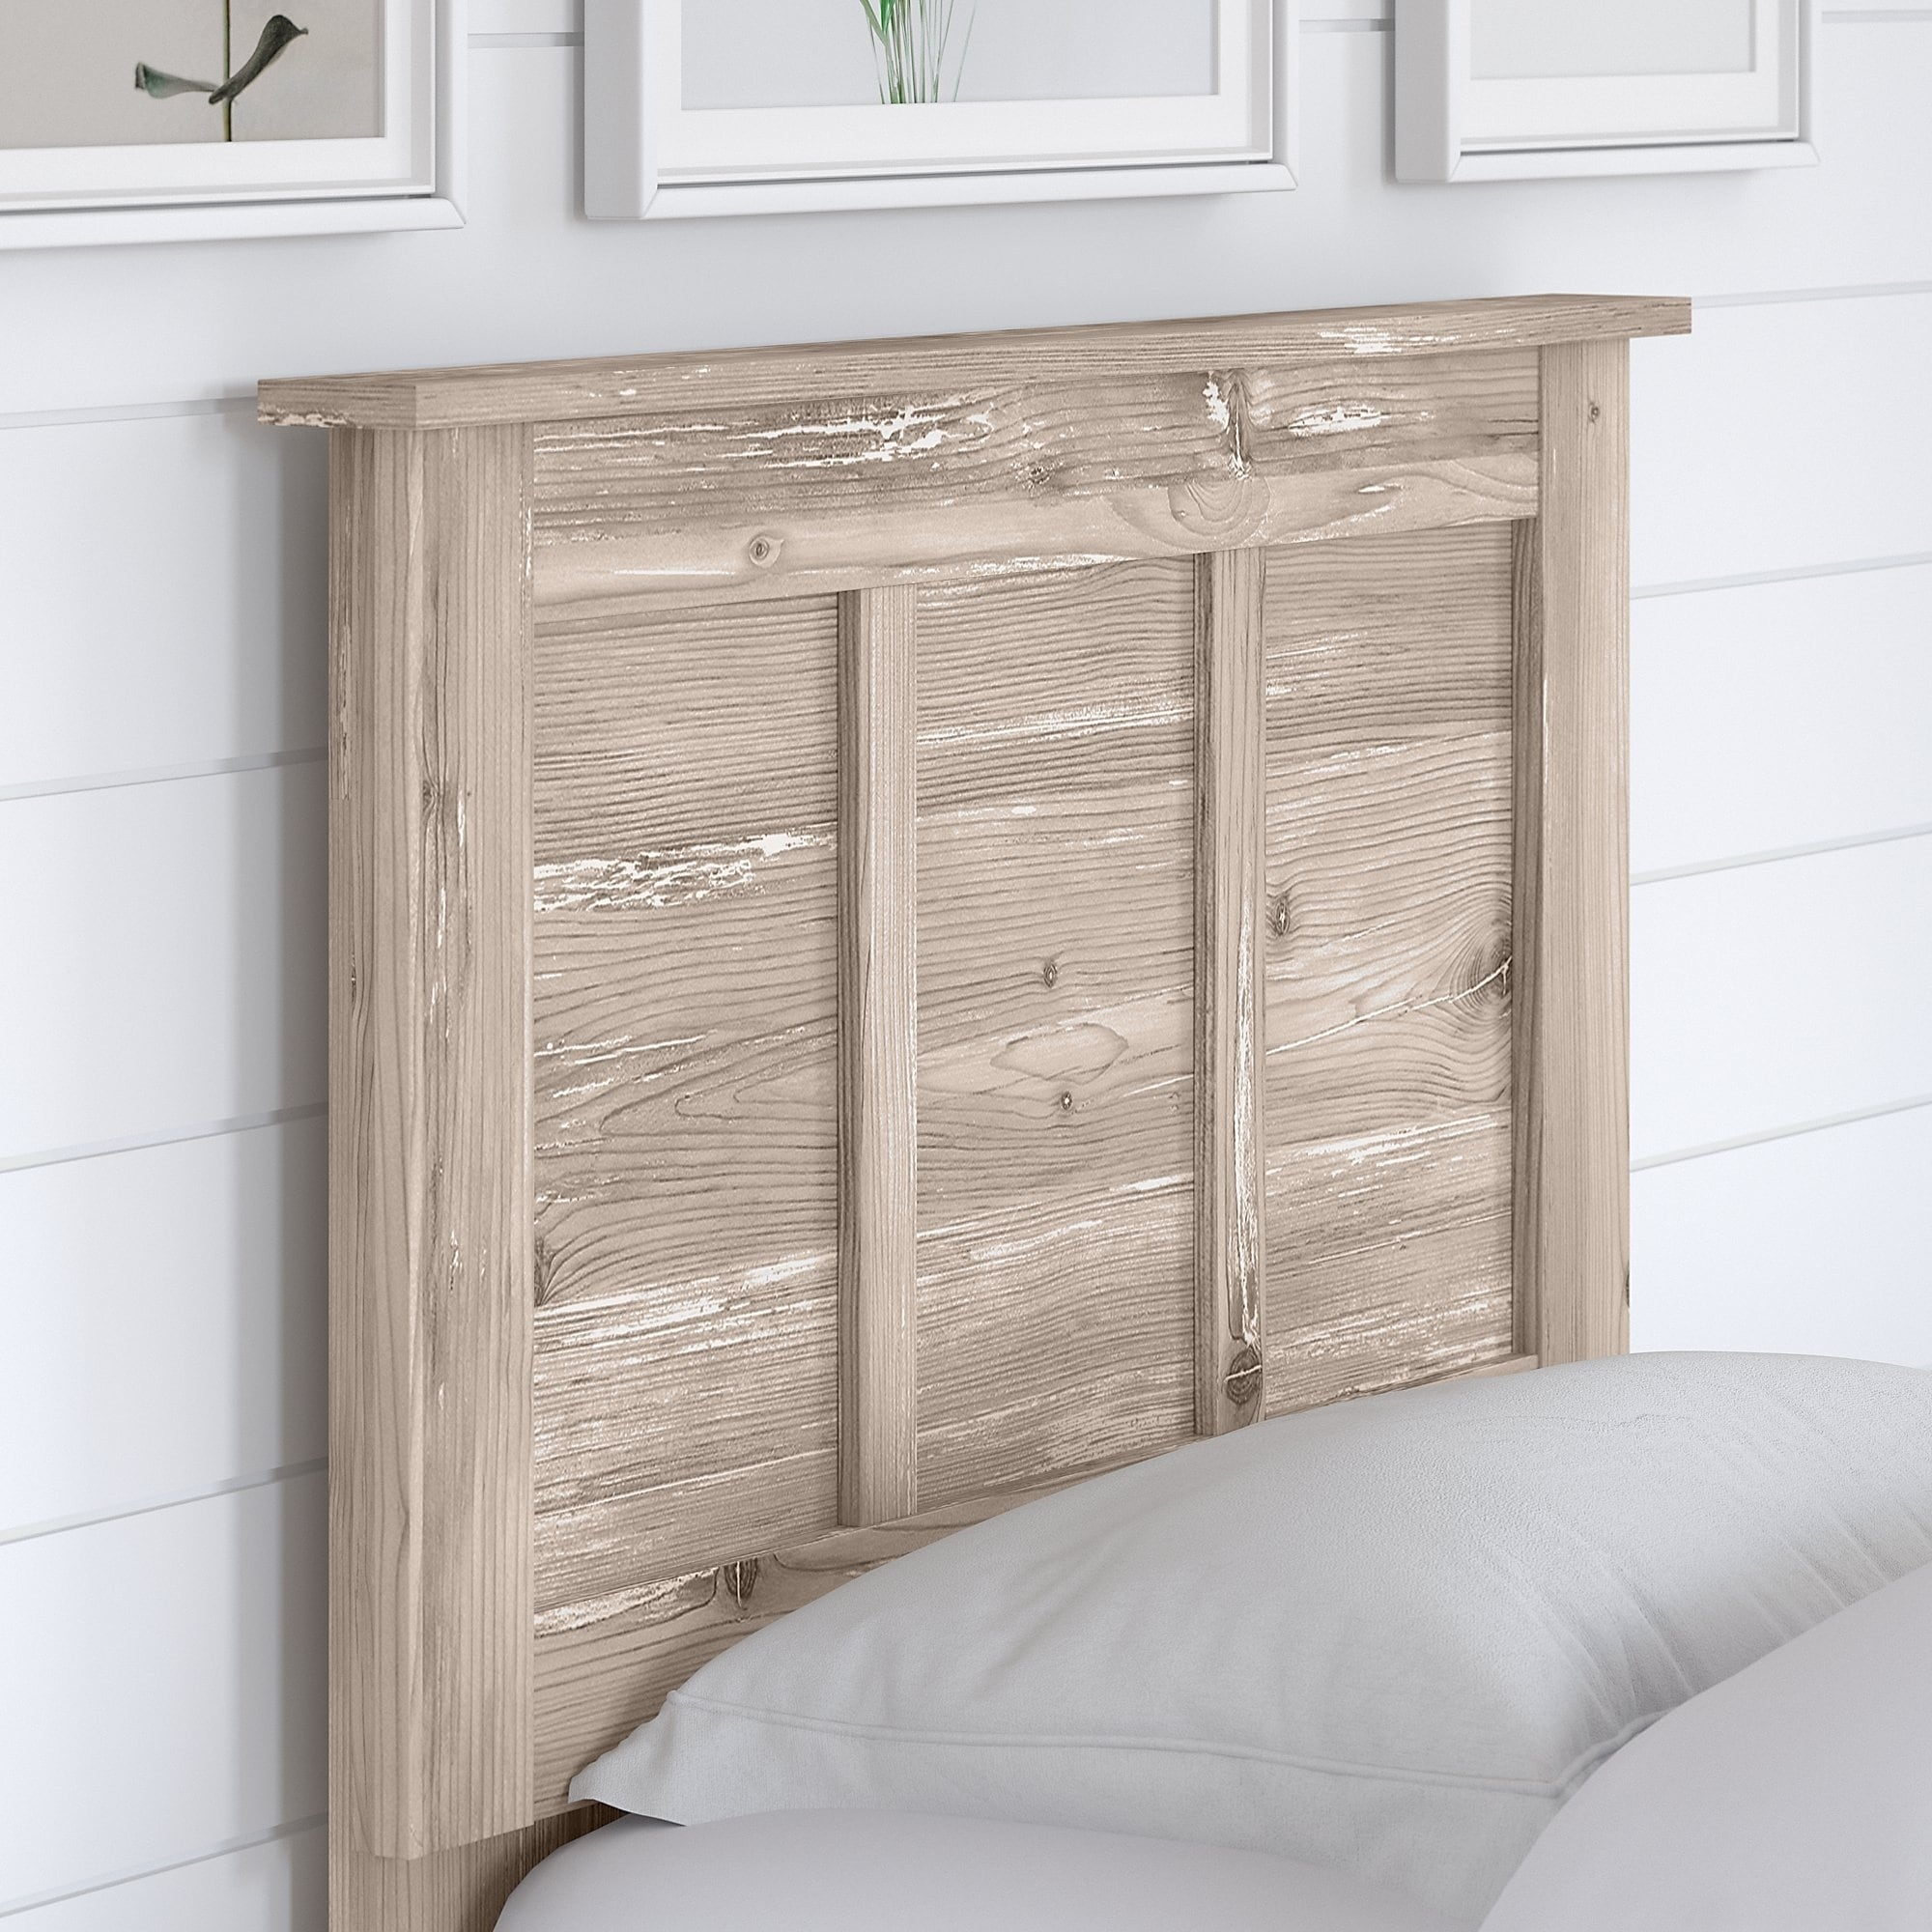 Shop River Brook Twin Headboard From Kathy Ireland Home By Bush Furniture Overstock 30689286